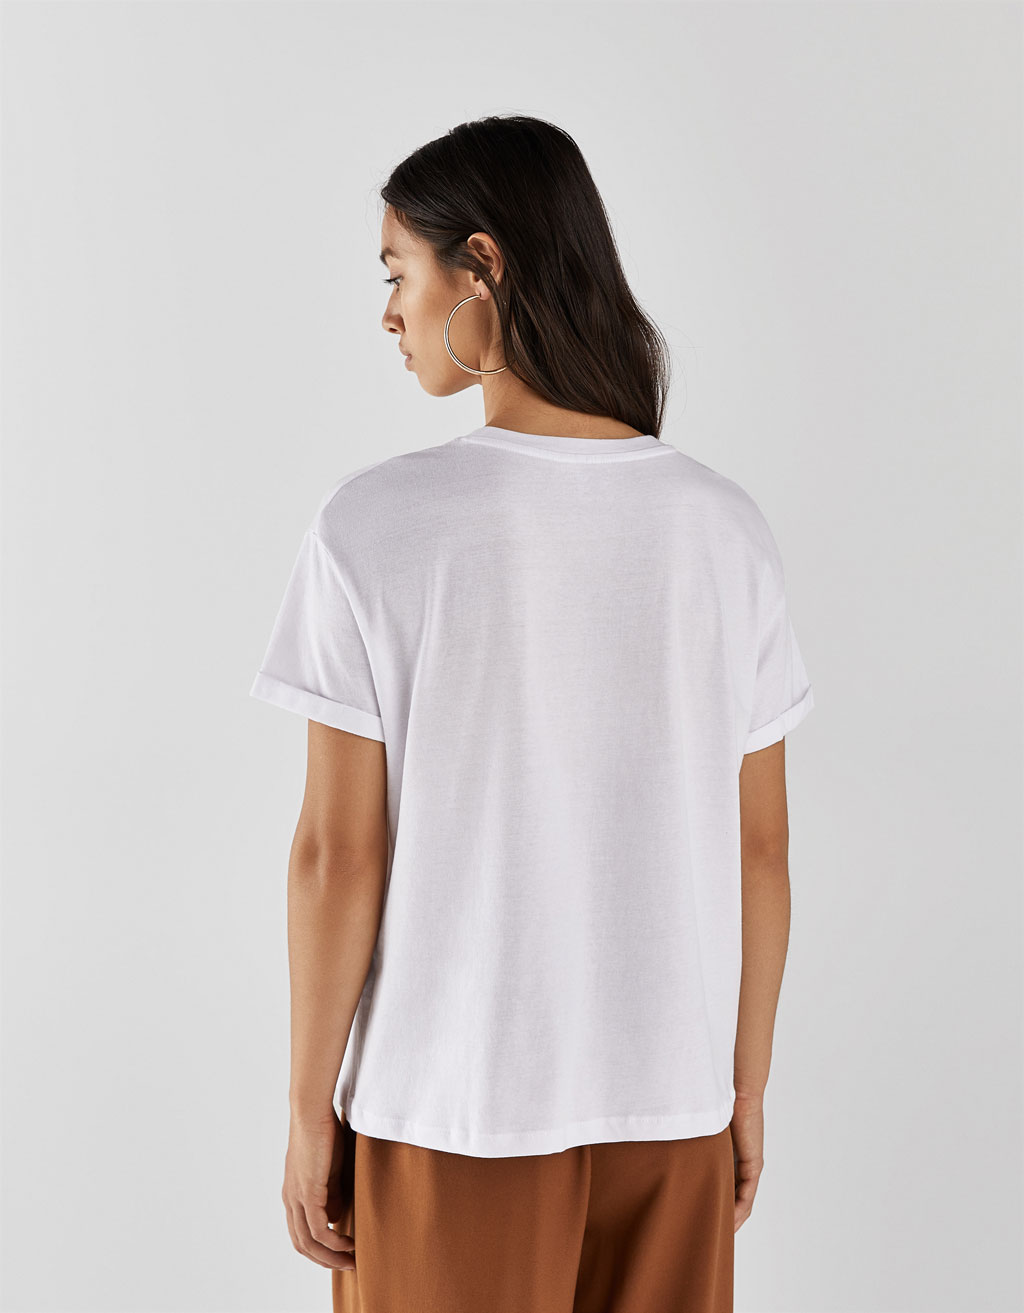 031292e2c11f98 T-shirt with print - CLOTHING - Bershka Greece